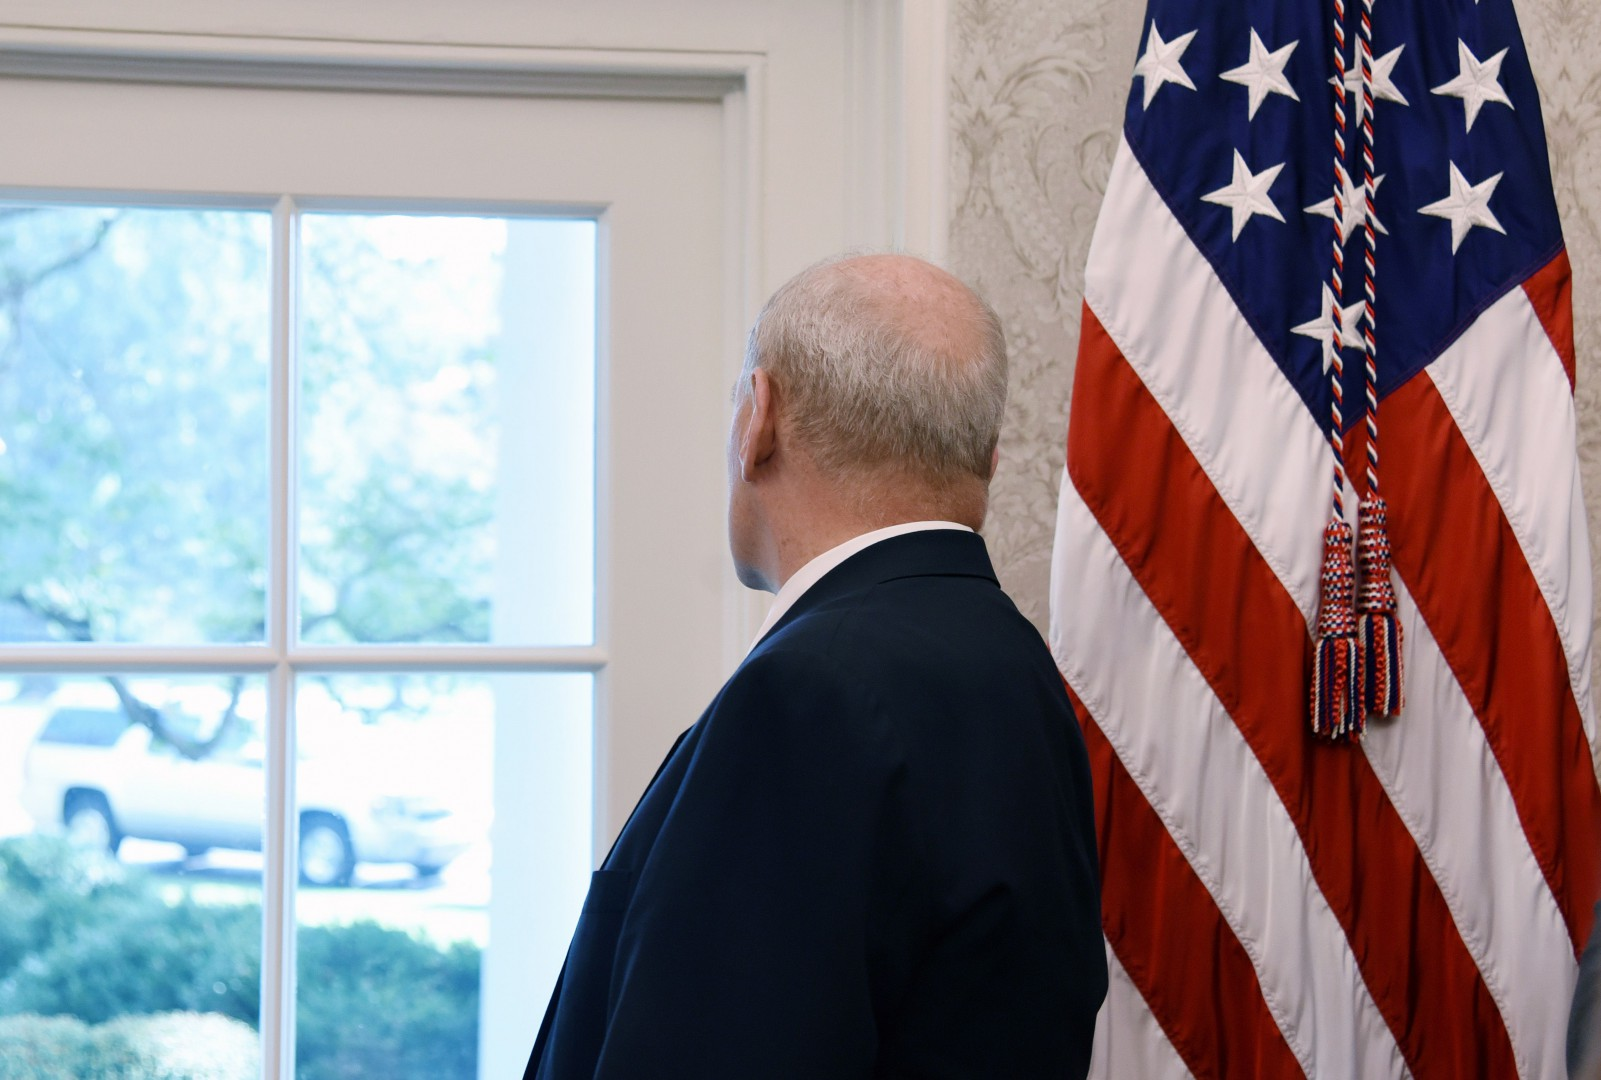 """White House Chief of Staff John Kelly looks outside during a meeting between US President Donald Trump and Nikki Haley, the United States Ambassador to the United Nations in the Oval office of the White House on October 9, 2018 in Washington, DC. - Nikki Haley resigned Tuesday as the US ambassador to the United Nations, in the latest departure from President Donald Trump's national security team. Meeting Haley in the Oval Office, Trump said that Haley had done a """"fantastic job"""" and would leave at the end of the year. (Photo by Olivier Douliery / AFP)"""